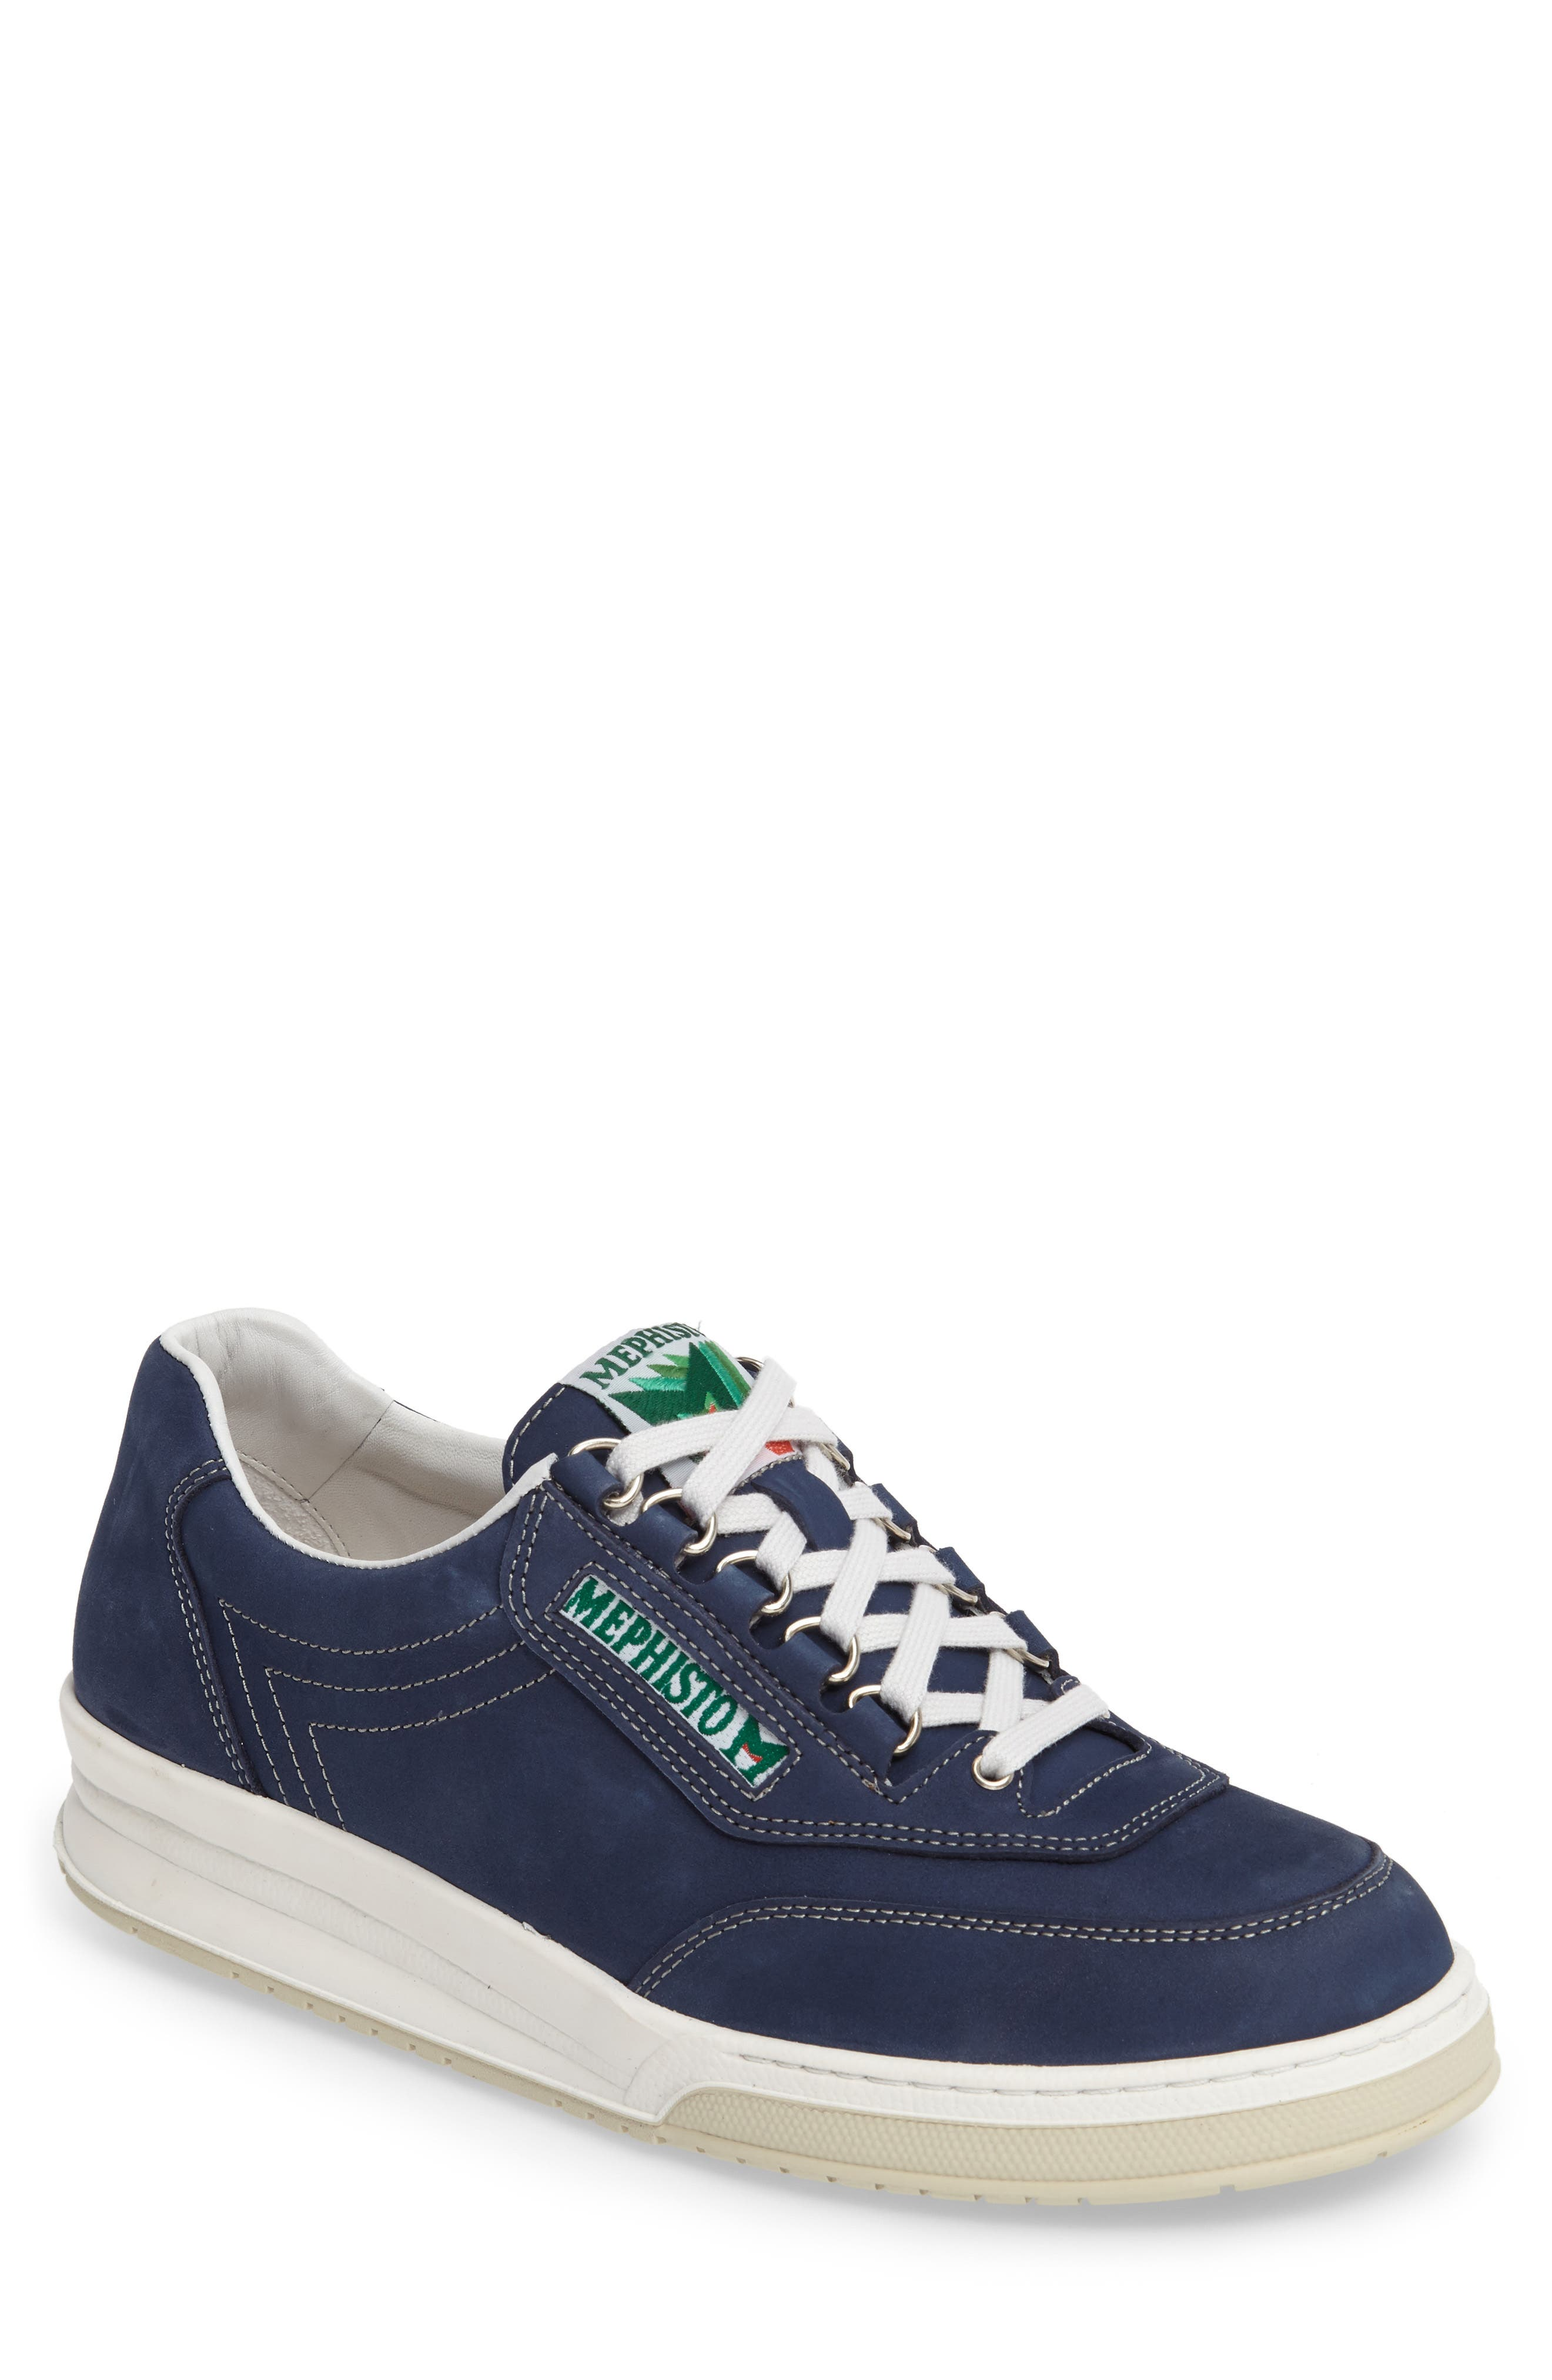 Main Image - Mephisto 'Match' Walking Shoe (Men)